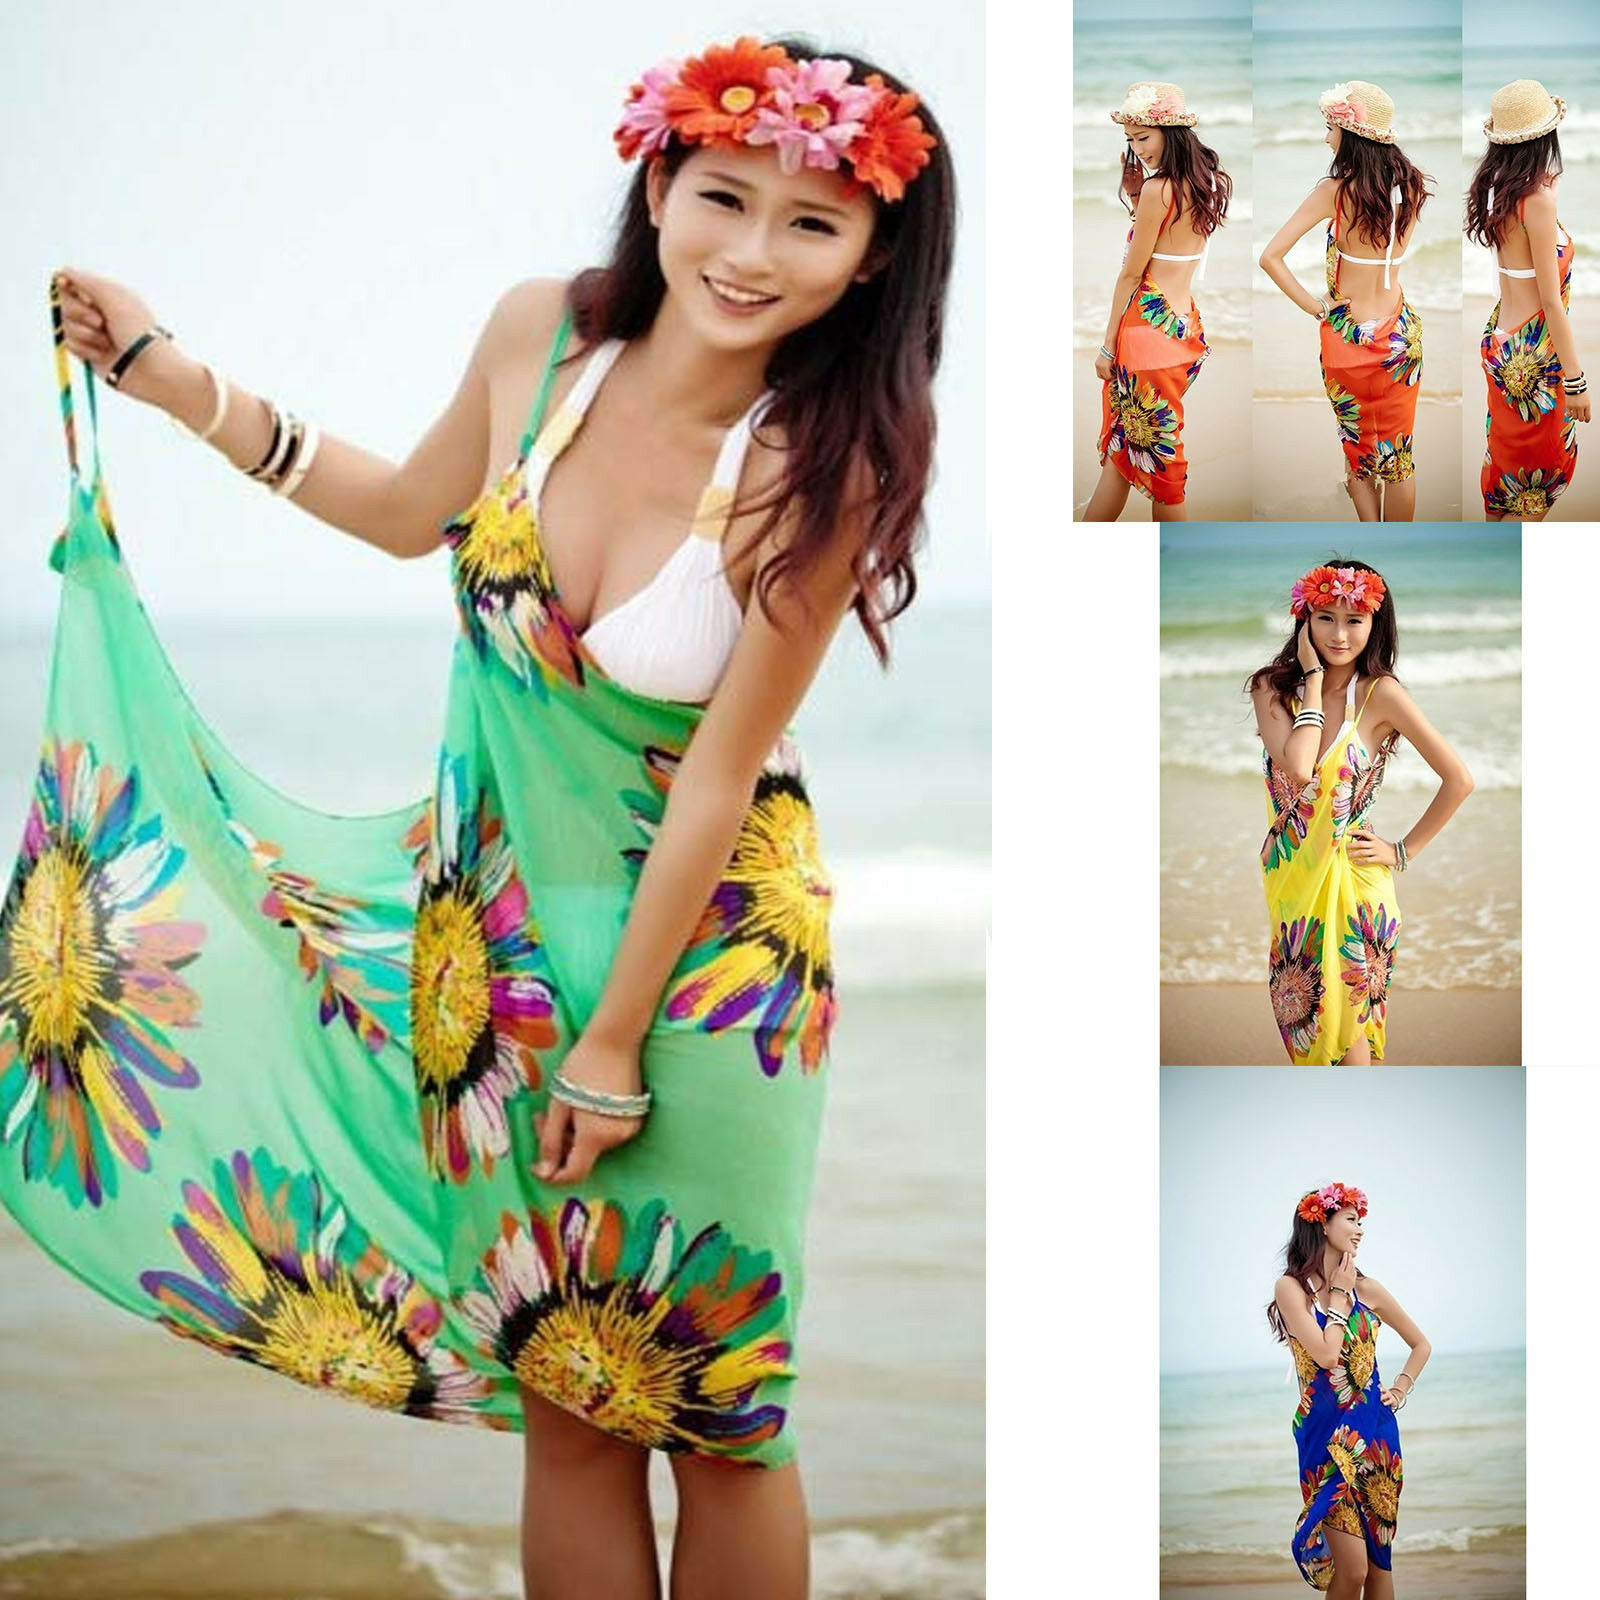 Summer Women Bathing Suit Bikini Swimwear Cover Up Beach Dre